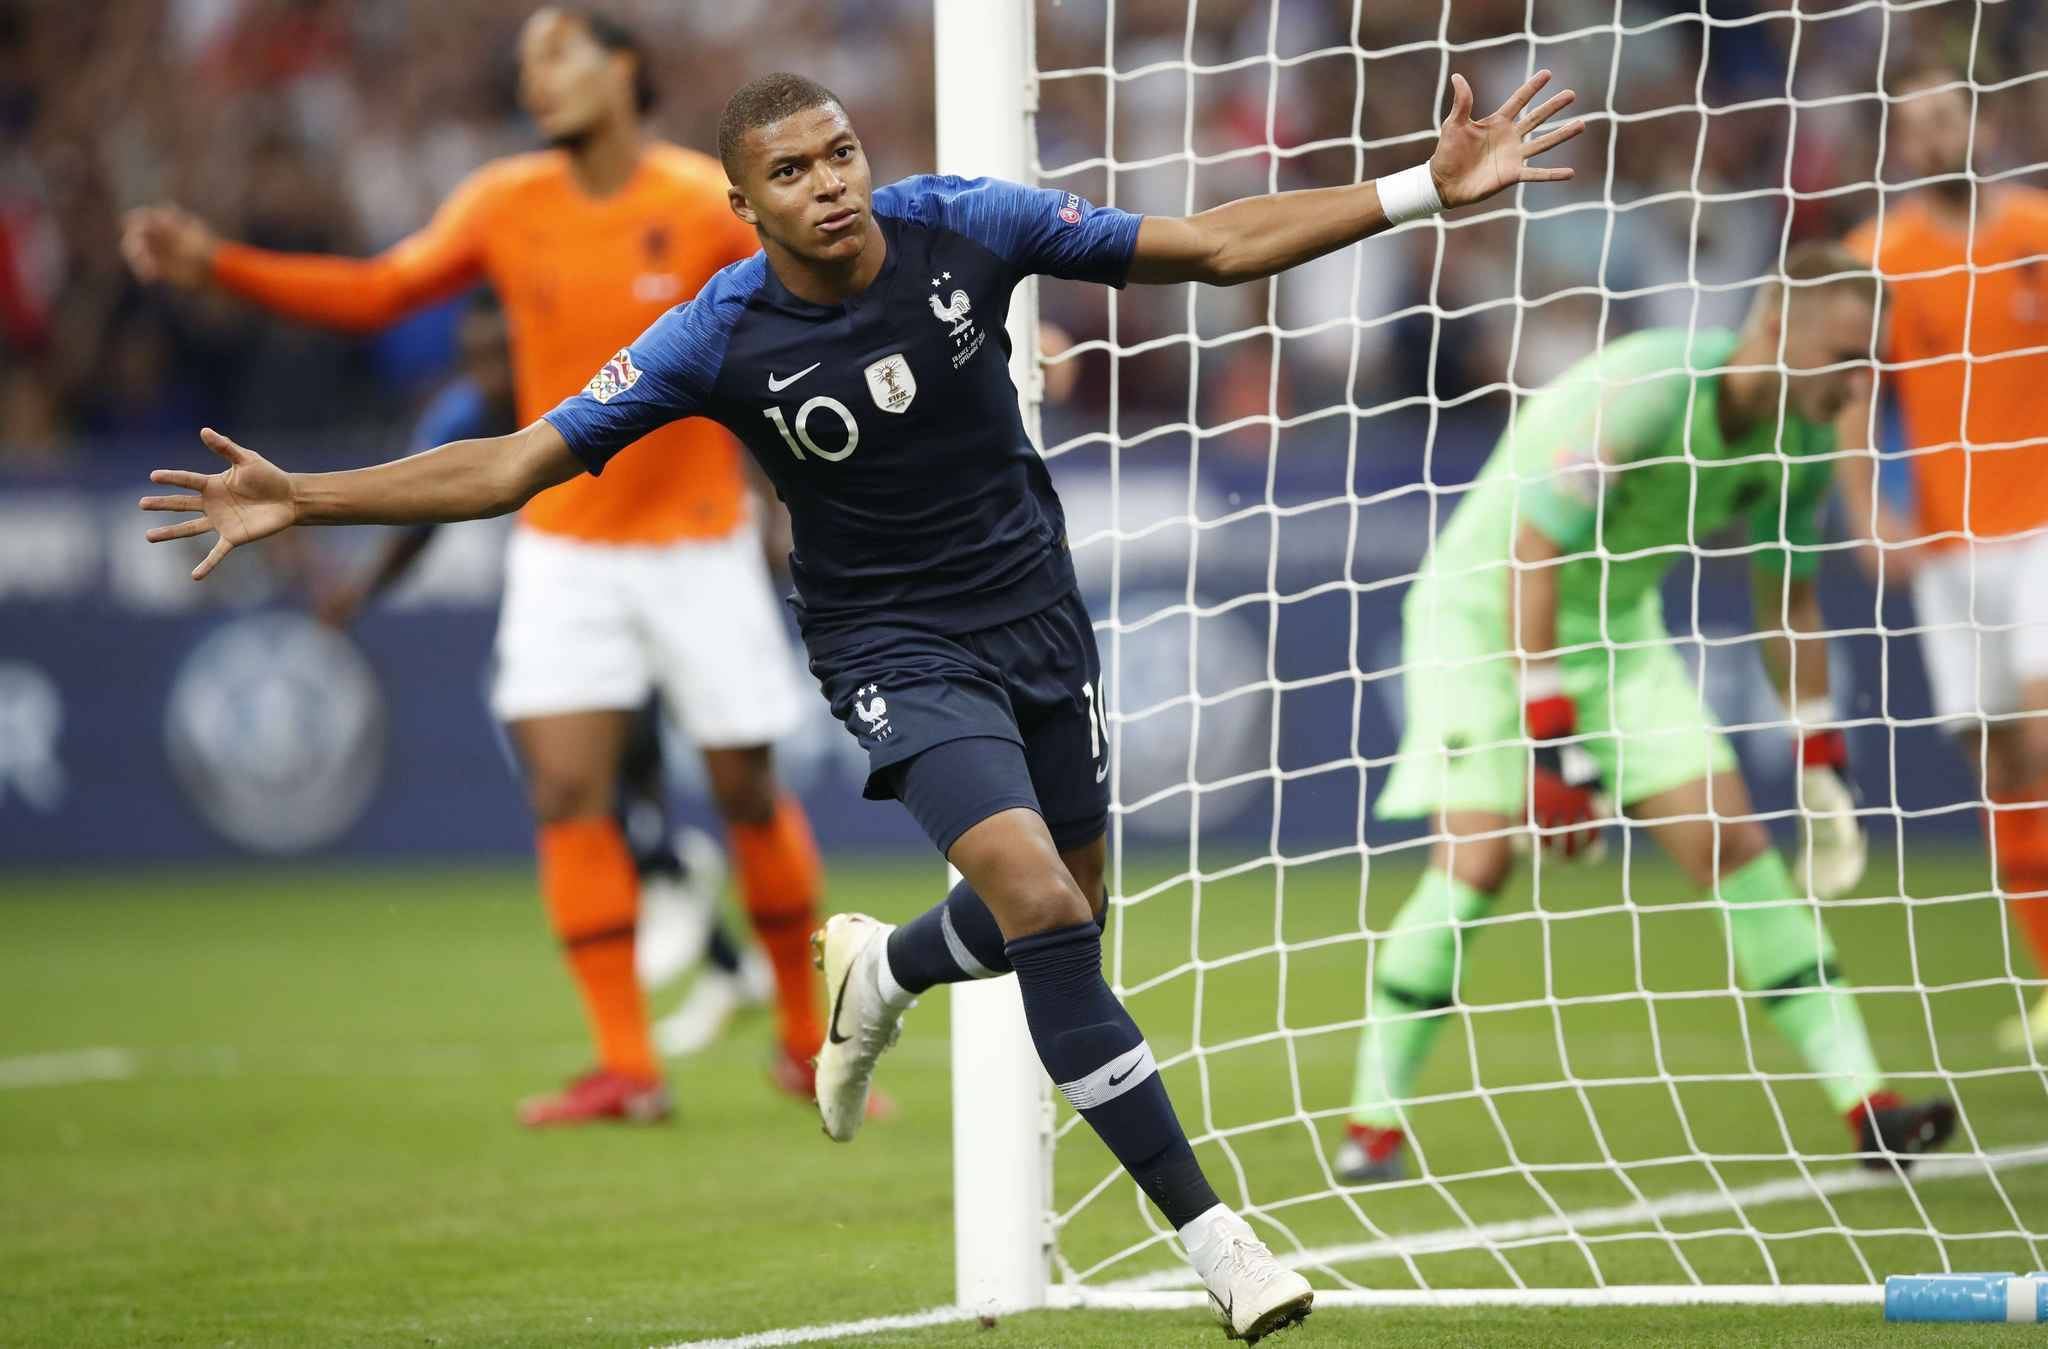 France's Kylian Mbappe celebrates after scored his side's opening goal during the UEFA Nations League soccer match between France and The Netherlands at the Stade de France stadium in Saint-Denis, outside Paris, France, Sunday, Sept. 9, 2018.